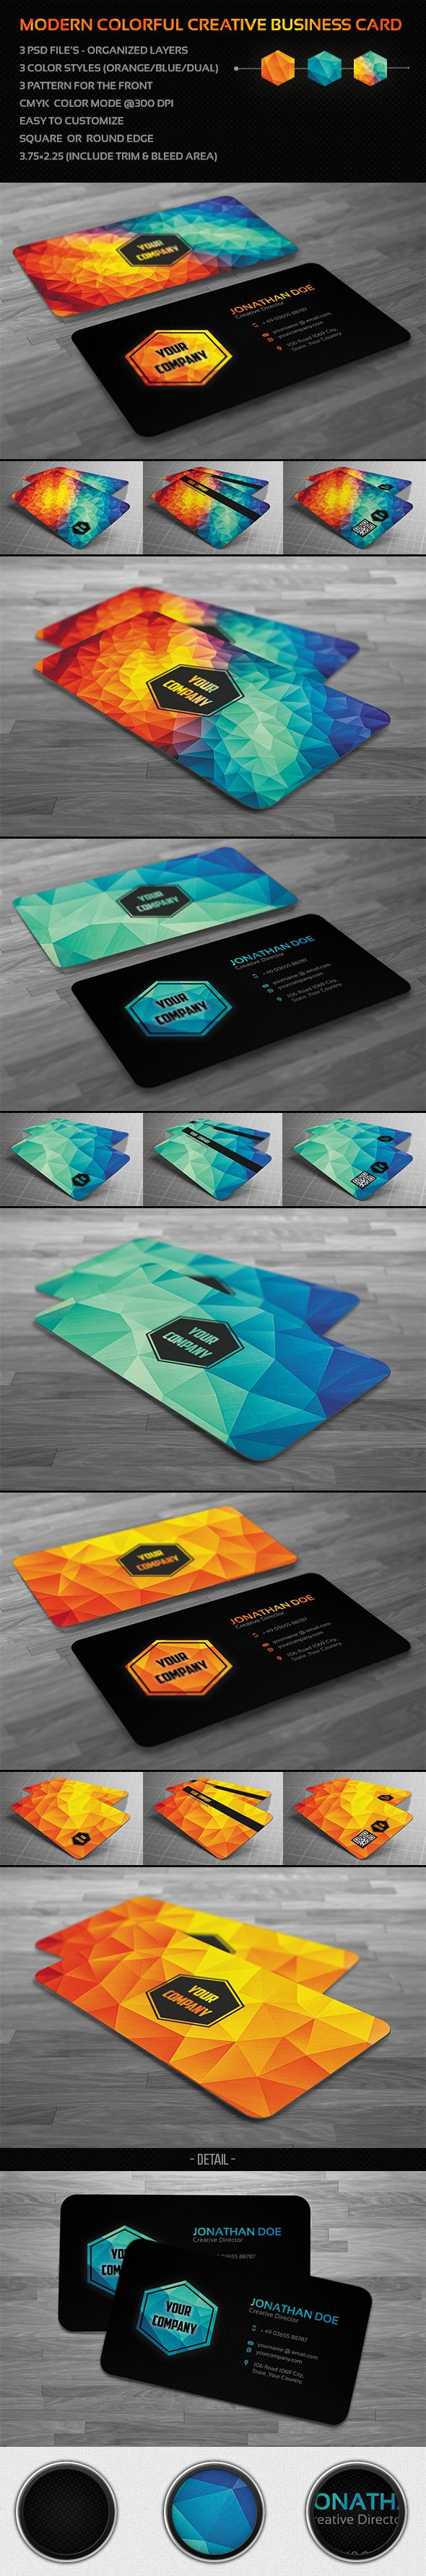 19 best business card images on pinterest business cards business creative and clean modern polygon business card used for all purpose very easy editable text layers or colorsgraphi reheart Gallery